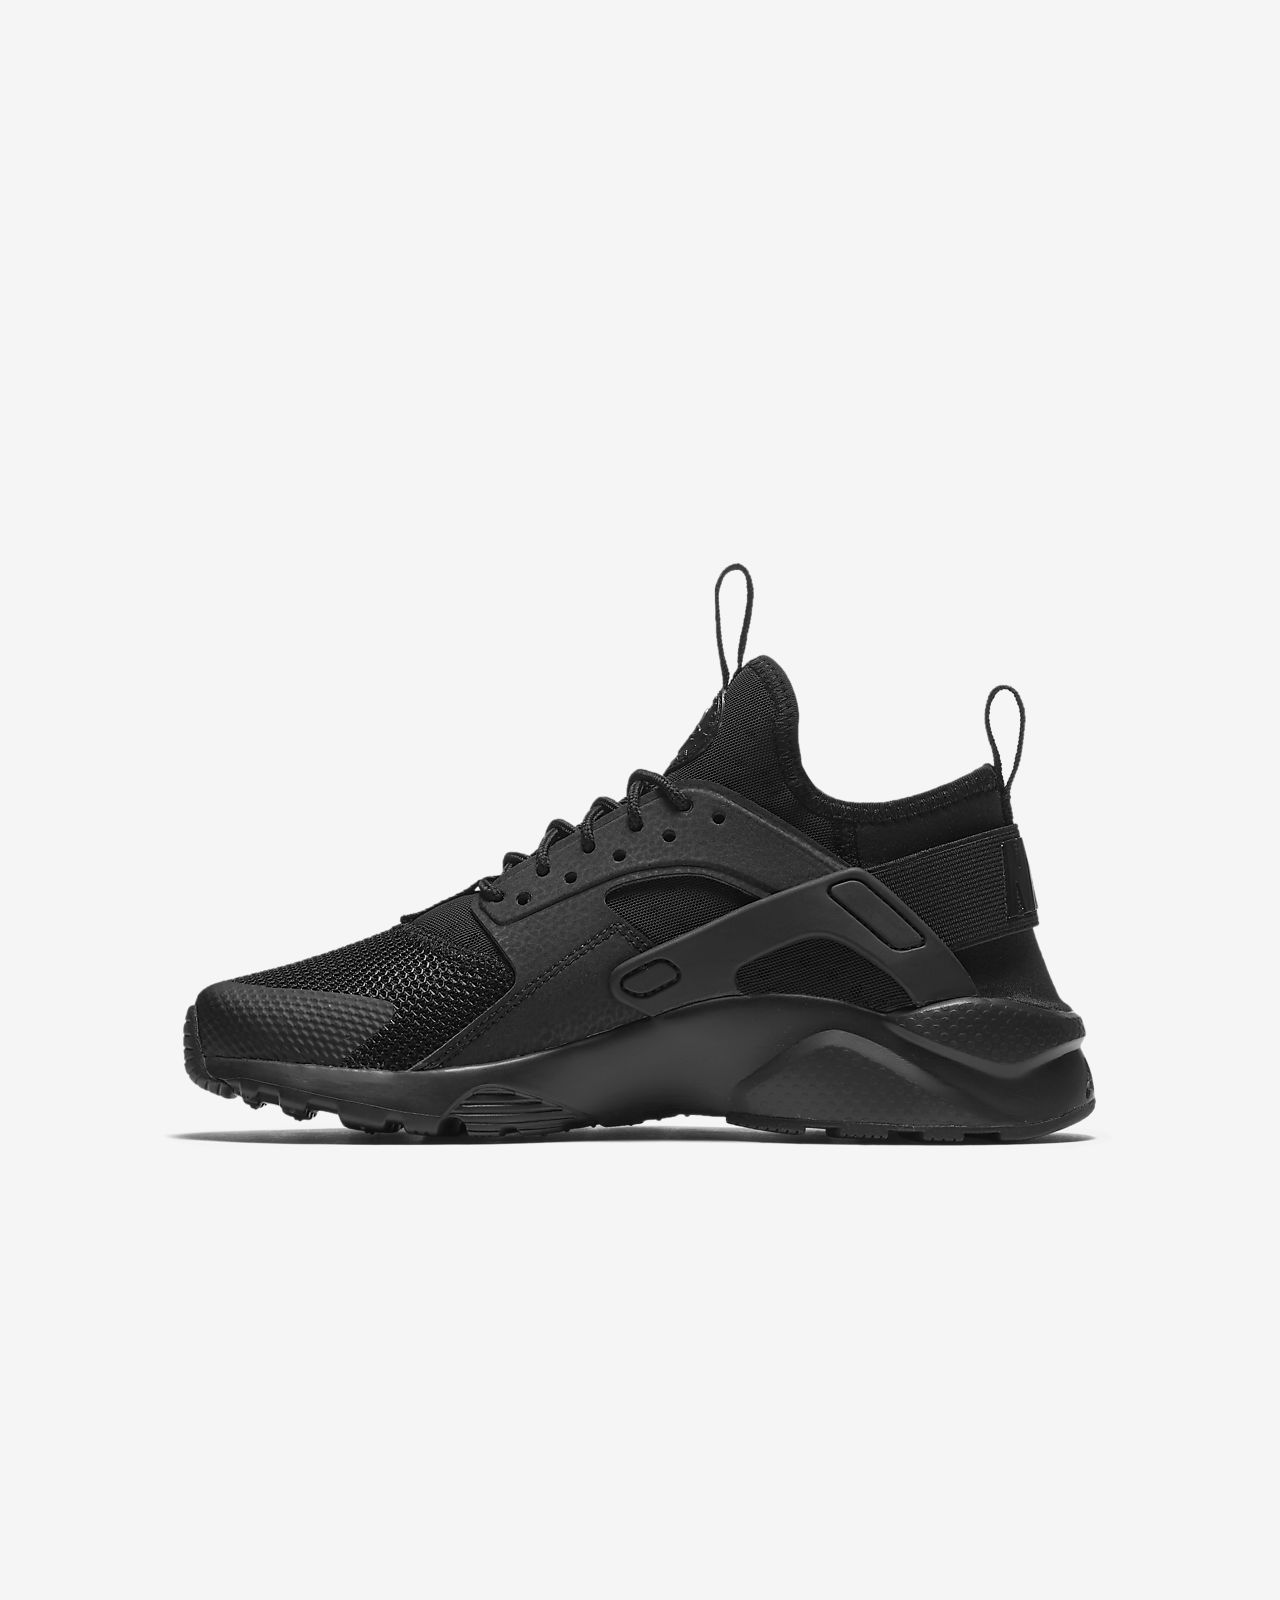 detailed look 221c7 e9efe nike huarache marroni ...